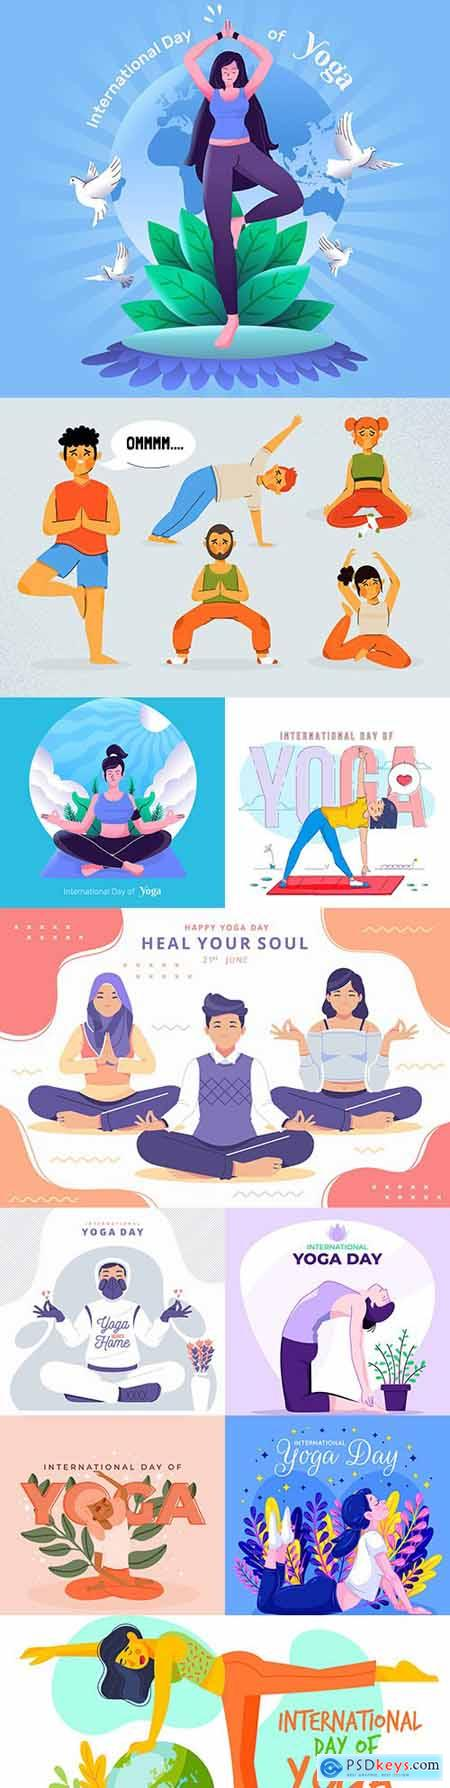 Yoga International day and meditation design illustration 4